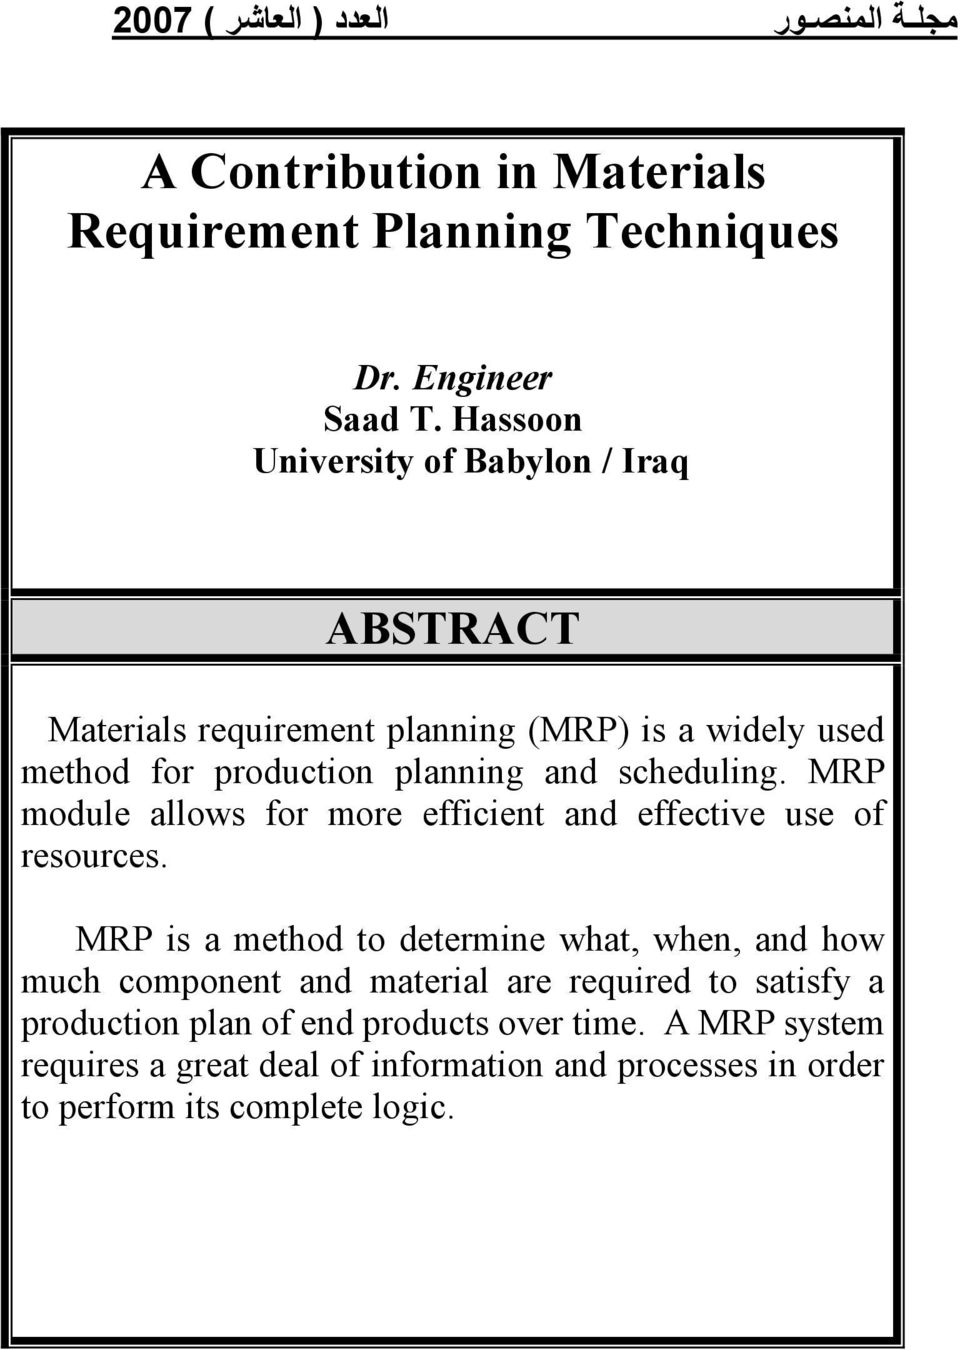 scheduling. MRP module allows for more efficient and effective use of resources.